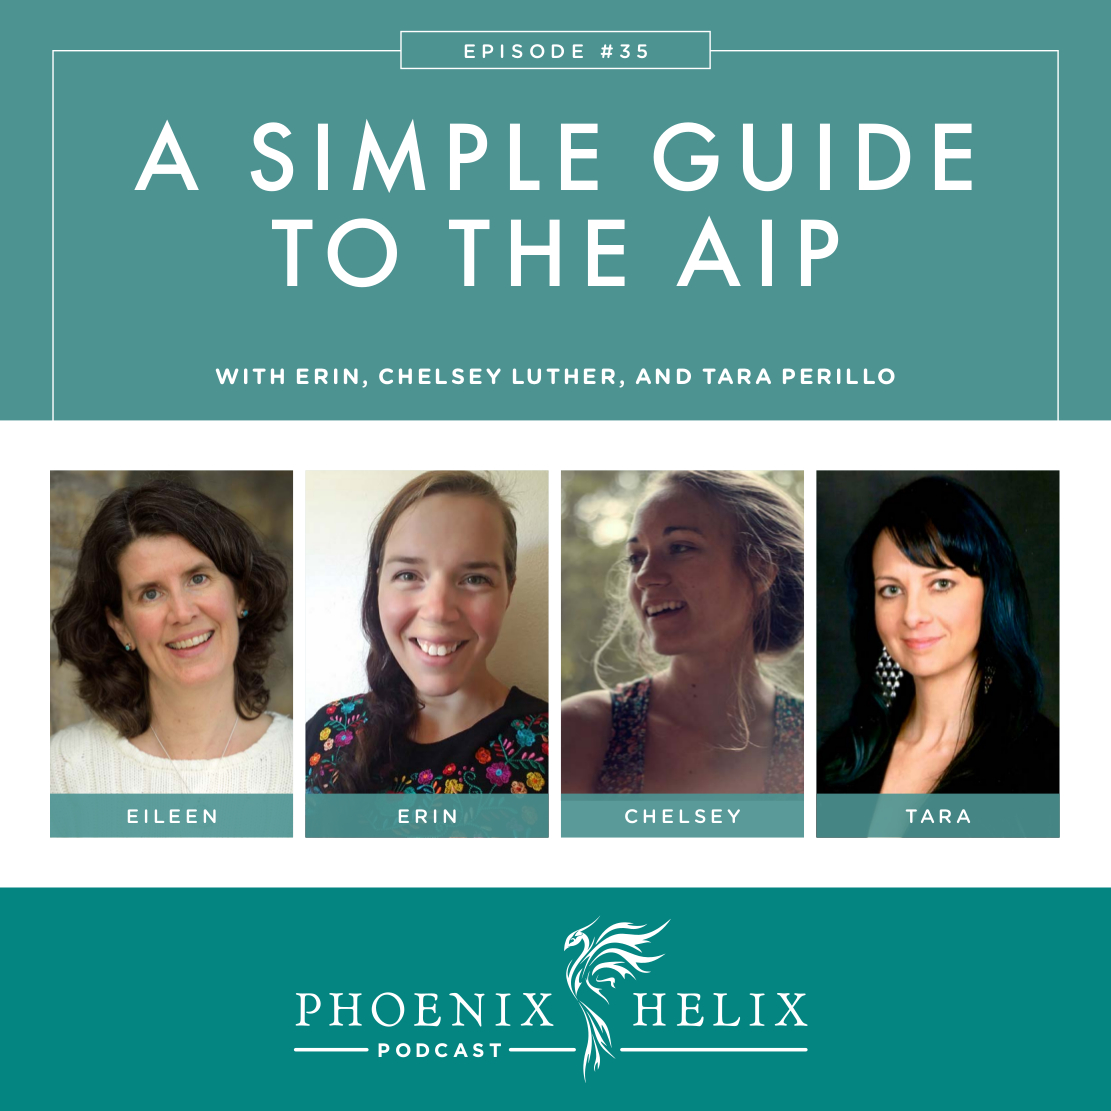 A Simple Guide to the Paleo Autoimmune Protocol (AIP) | Phoenix Helix Podcast